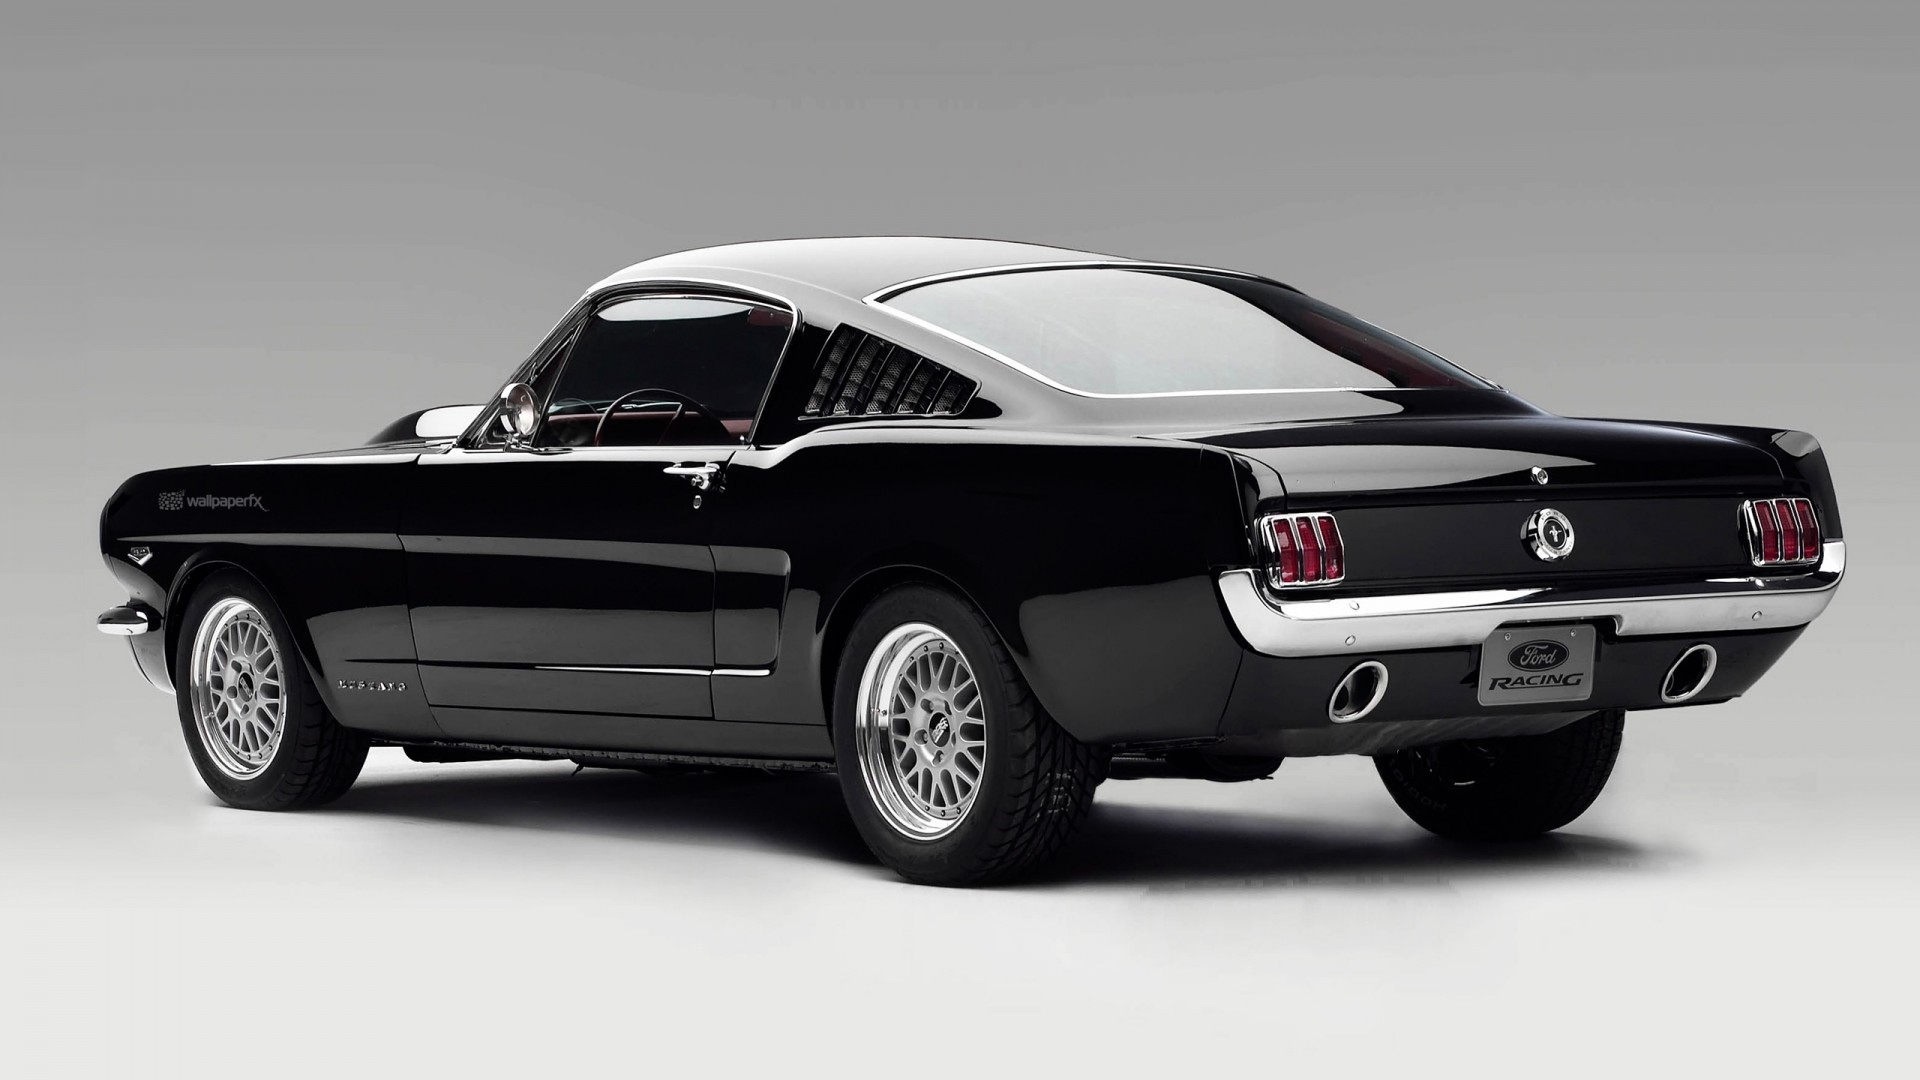 1965 Ford Mustang Fastback with Cammer Engine. My dream car